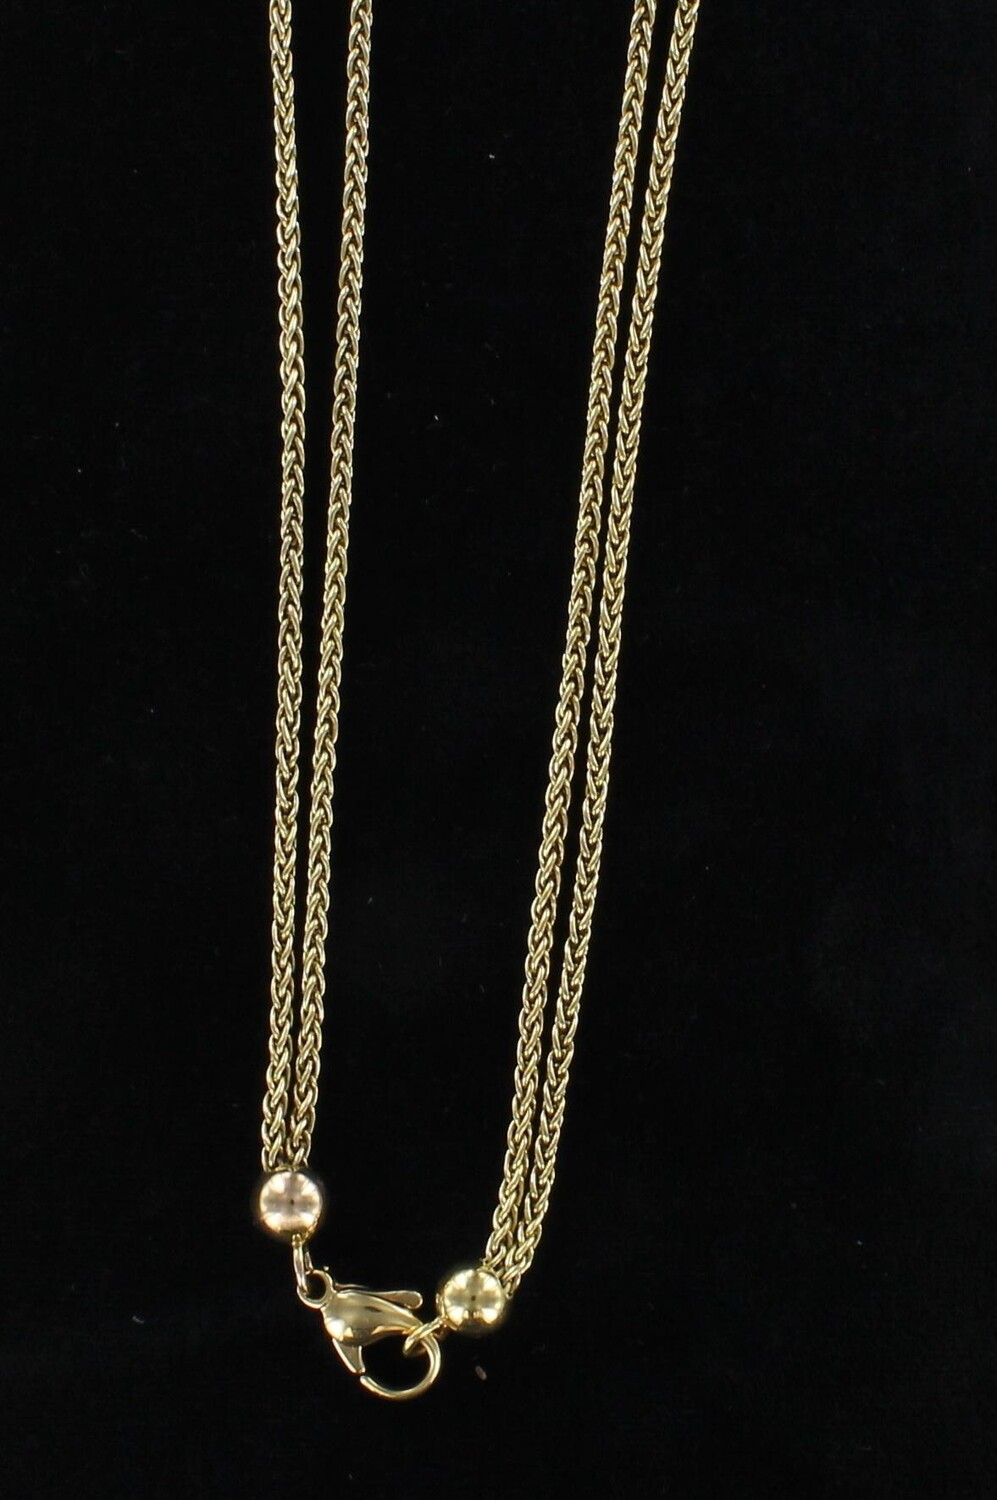 18KT WATCH CHAIN, CIRCA 1930